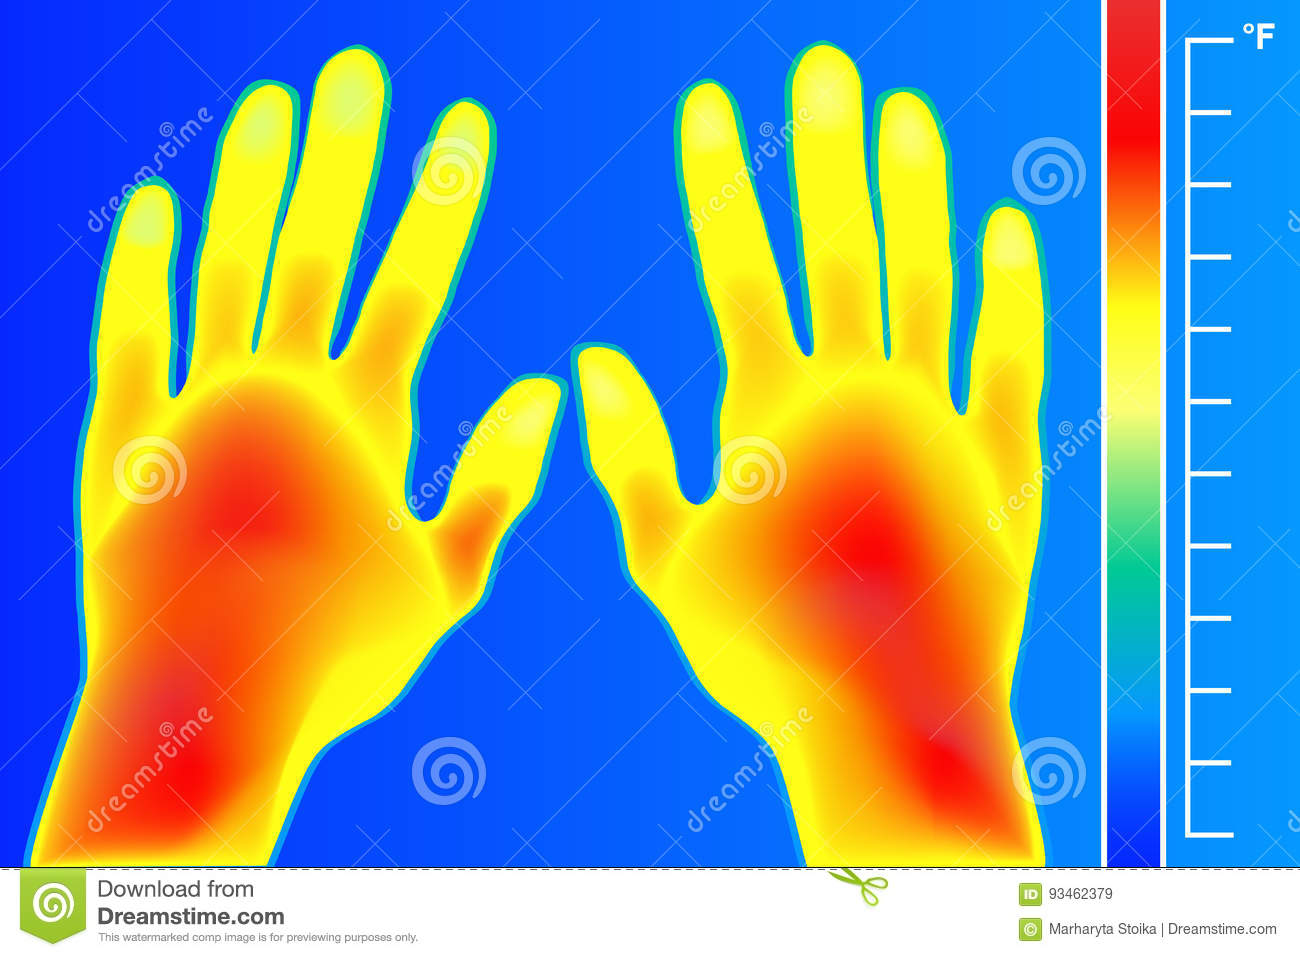 Thermal Imager Human Hands And Finger The Image Of A Arms Using